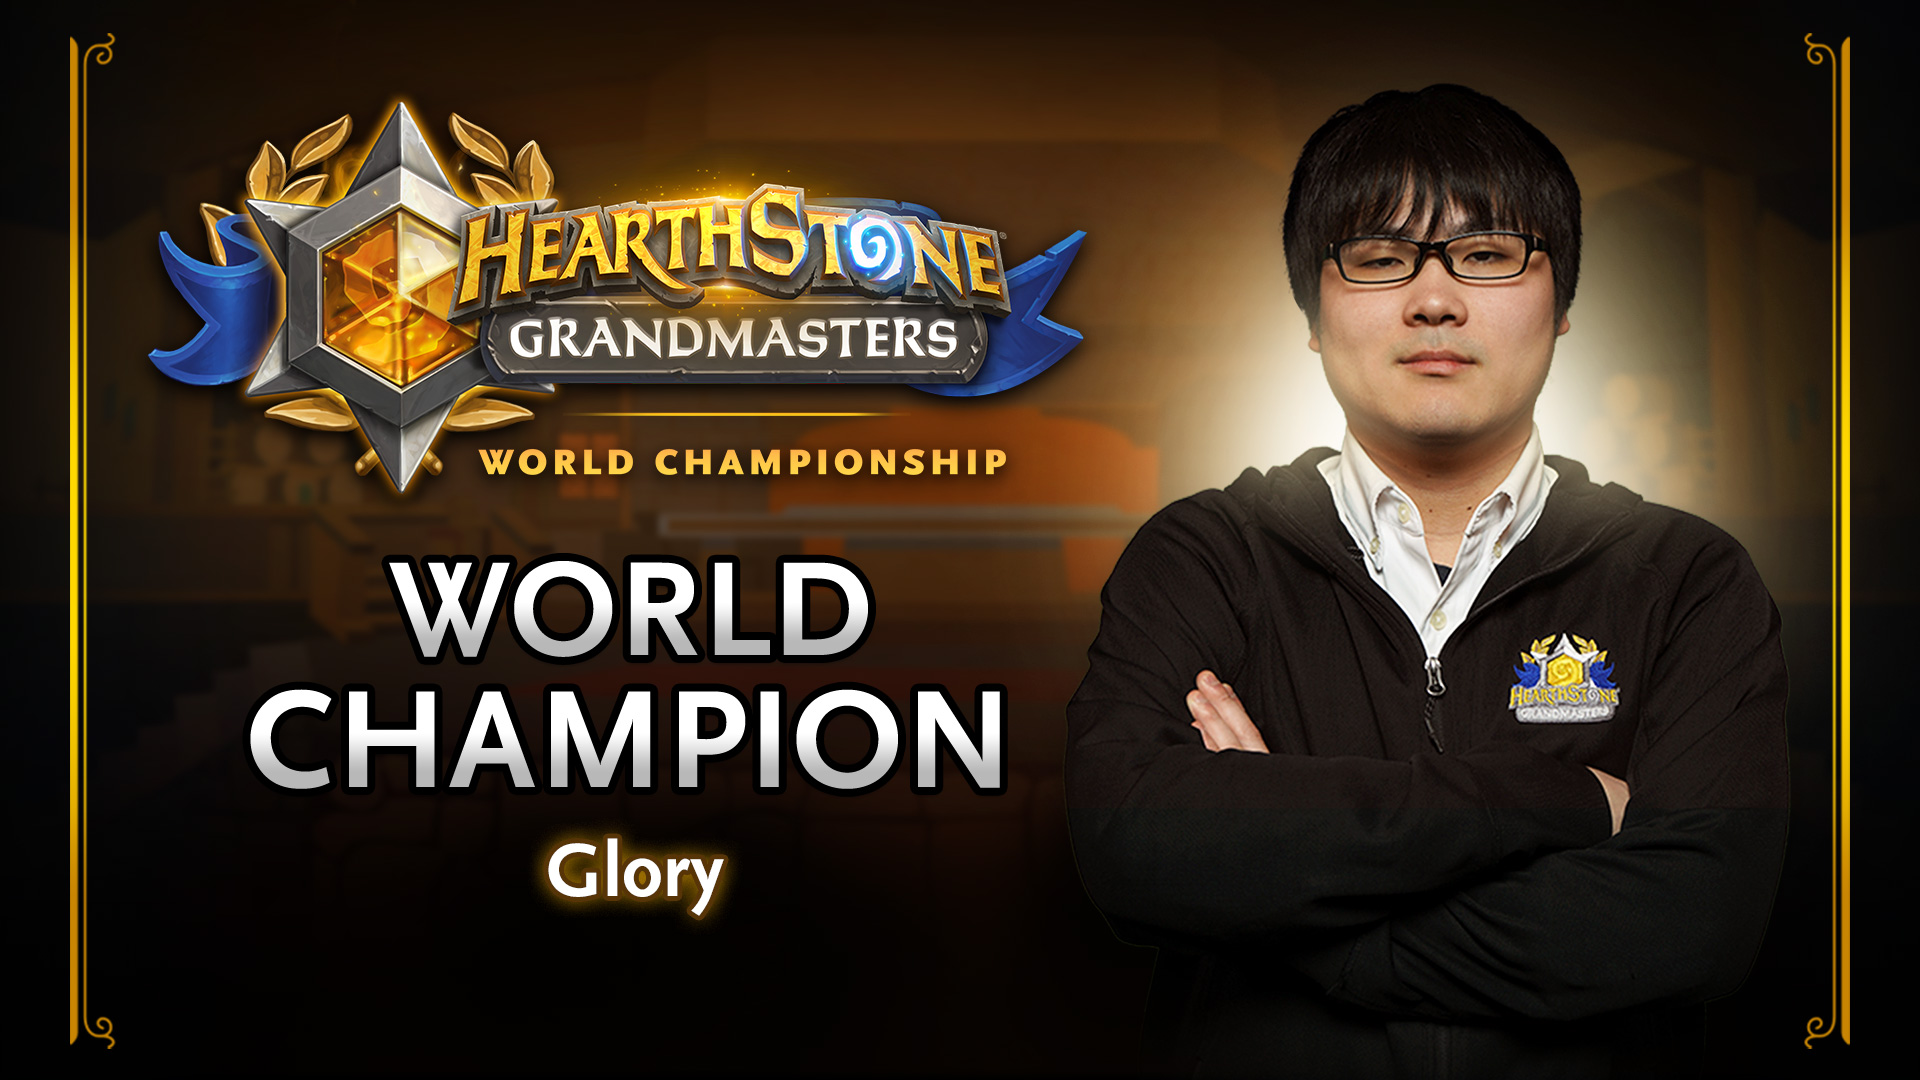 glory is the Hearthstone 2020 World Champion!